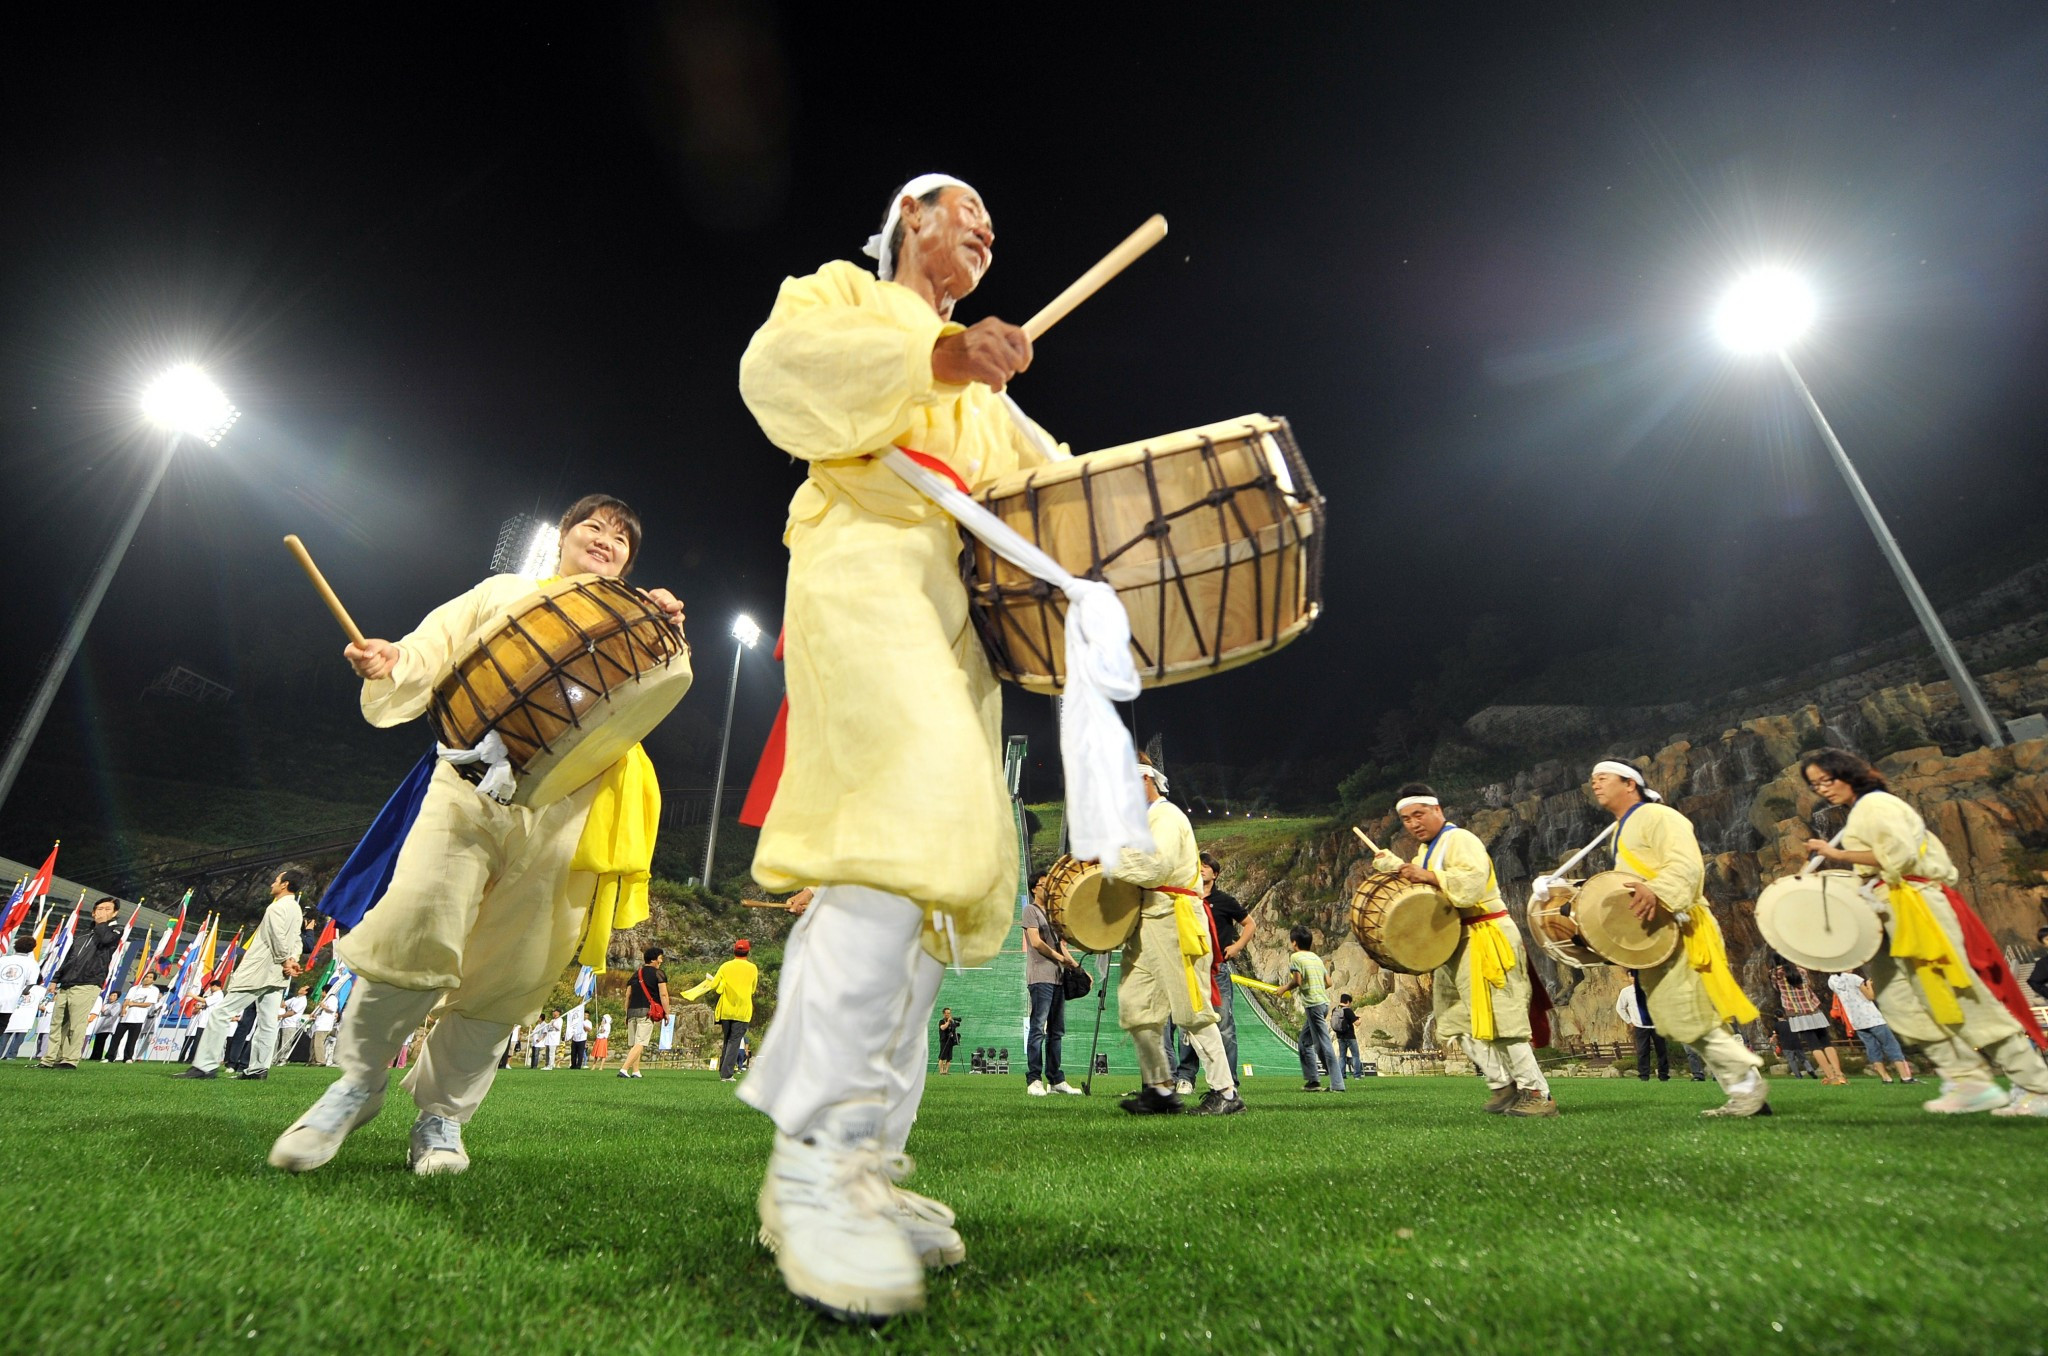 Many cultural activities are taking place to promote Pyeongchang 2018 ©Pyeongchang 2018